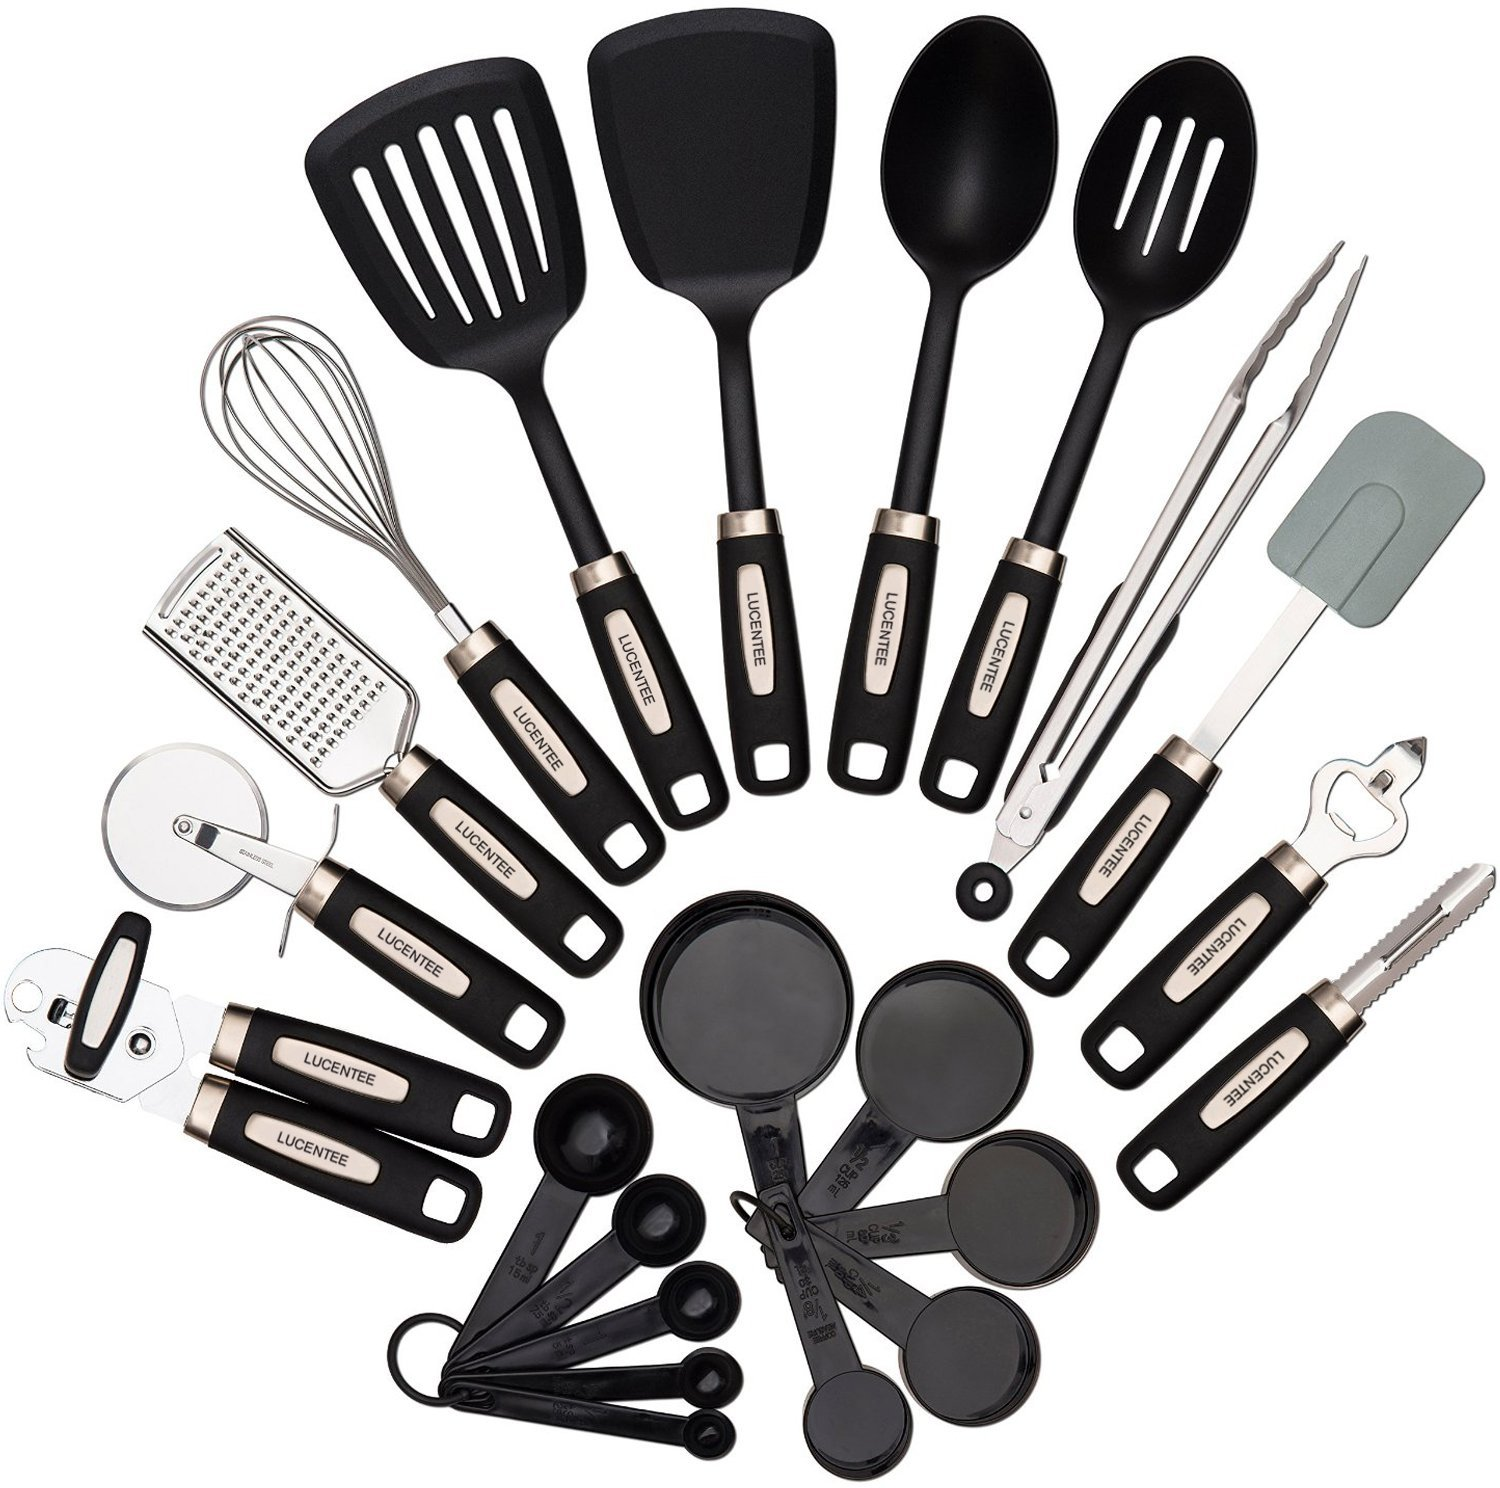 22 Piece Kitchen Utensils Sets Home Cooking Tools